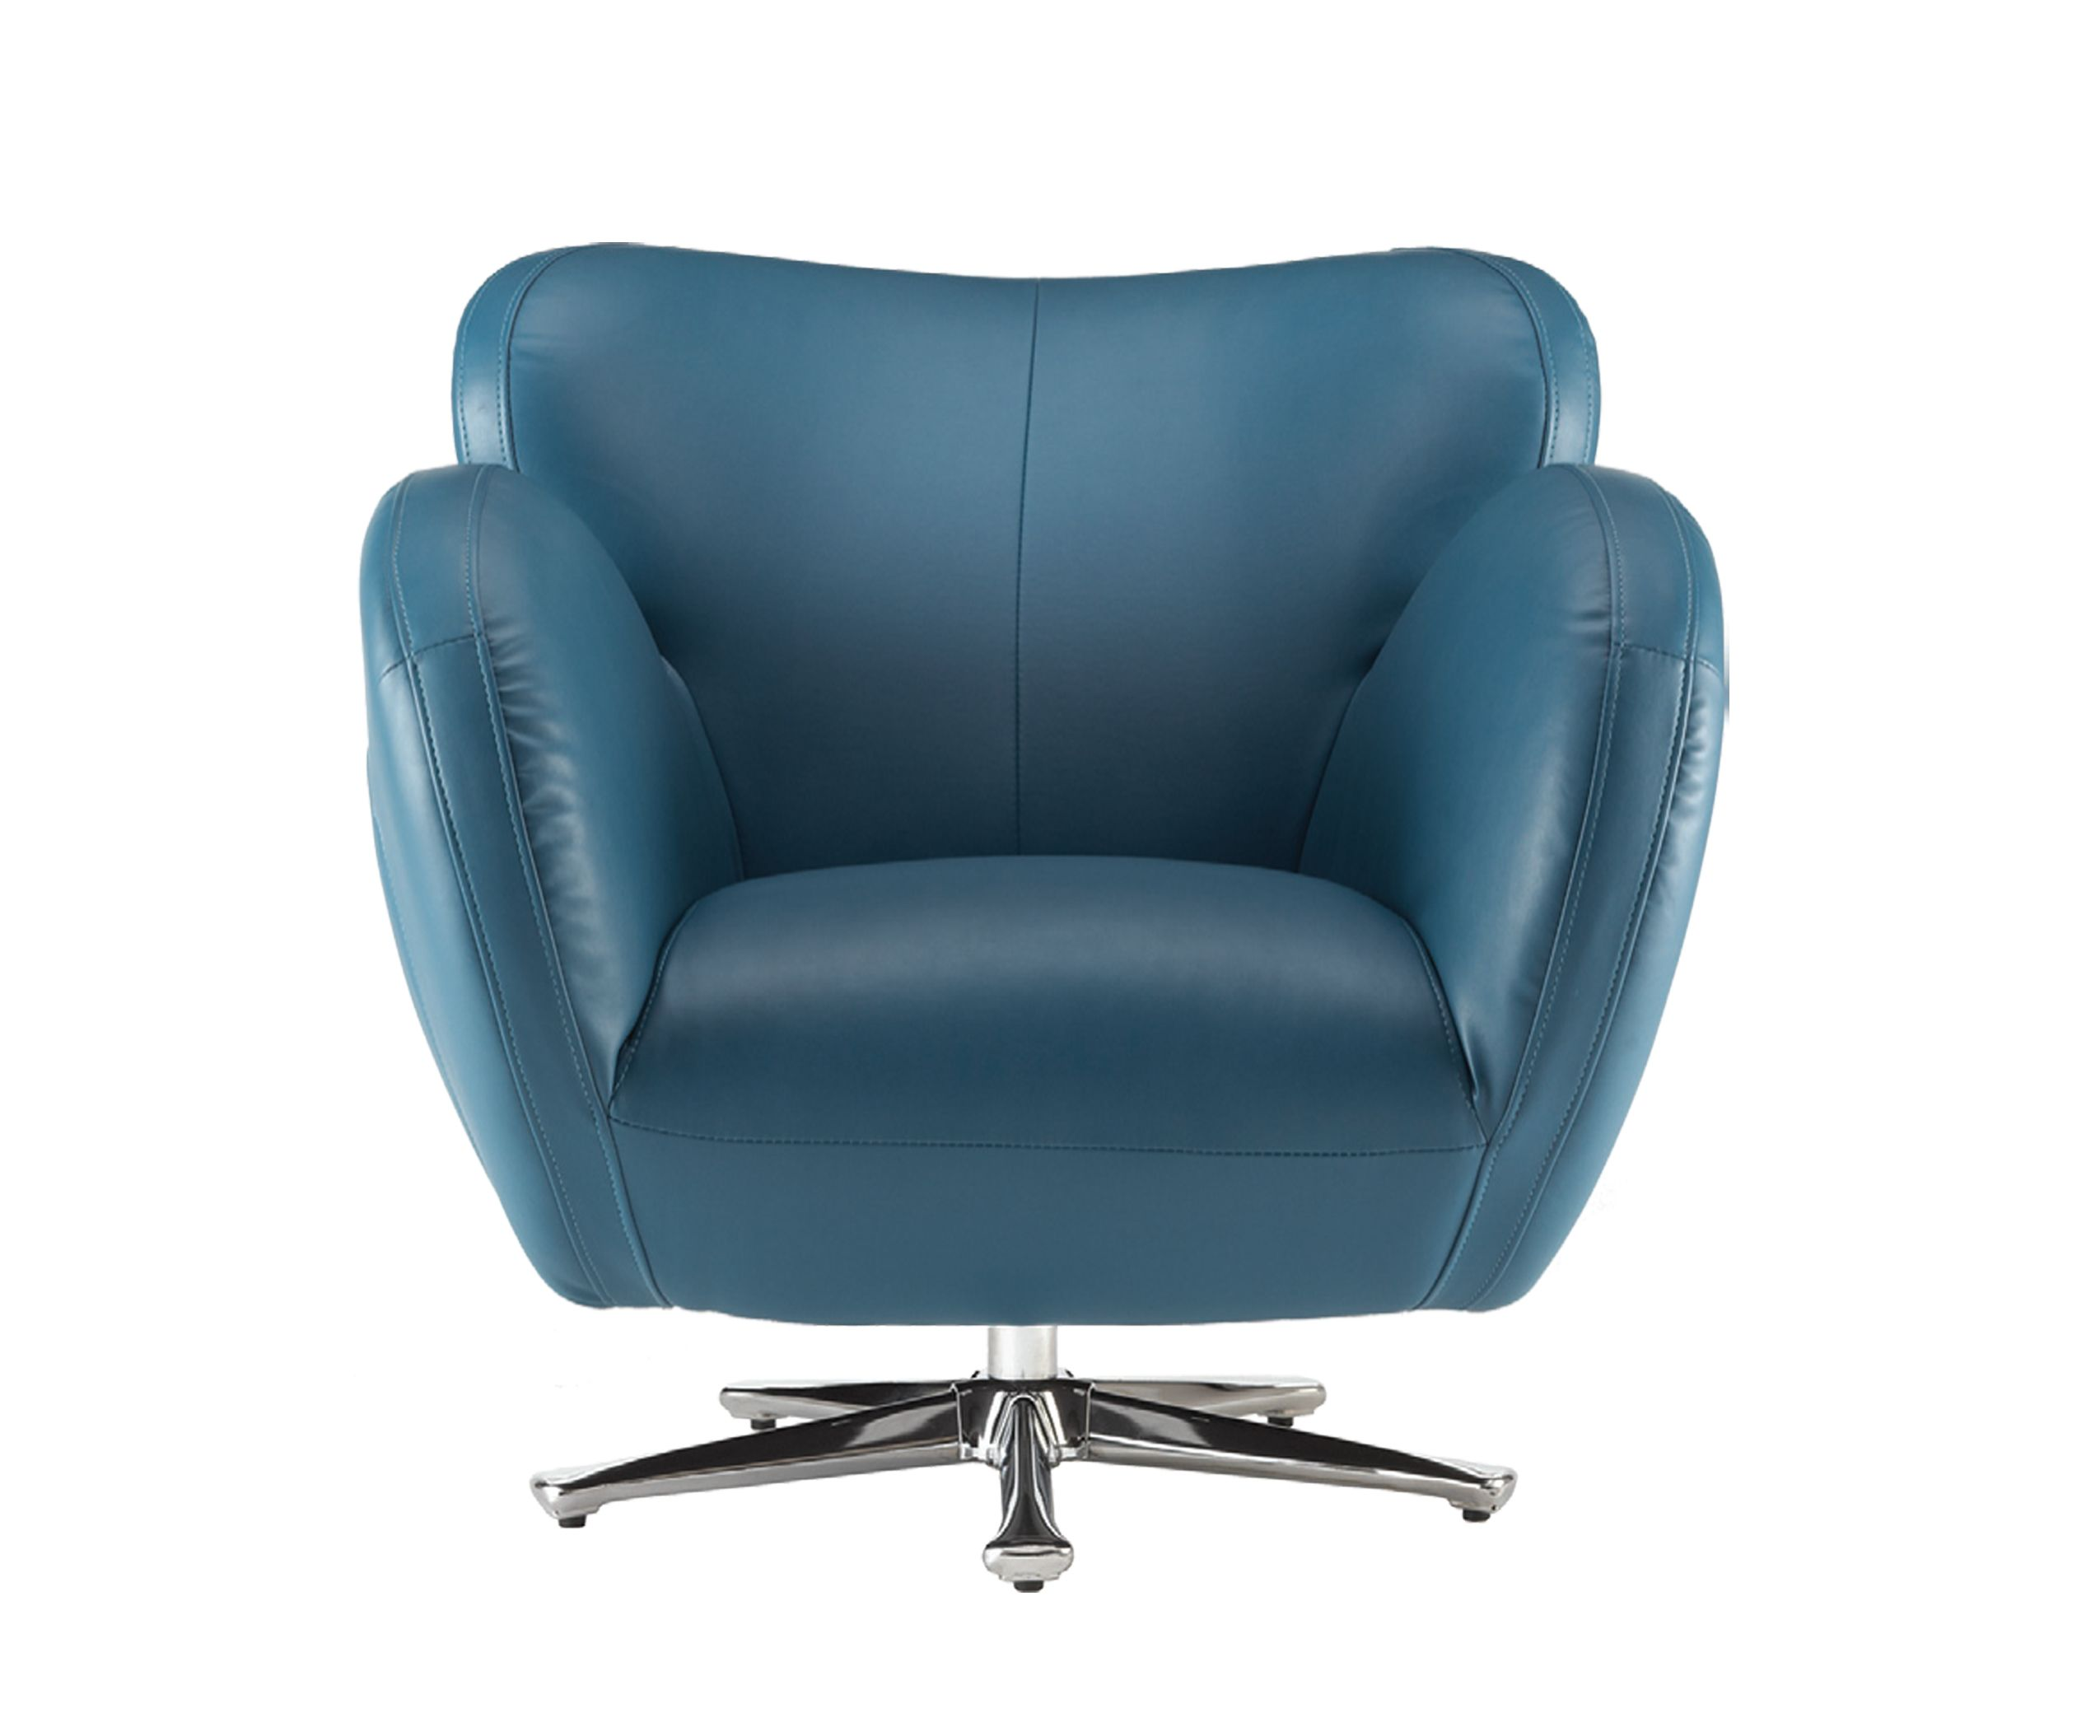 Turquoise Leather Chair Bomba Swivel Chair In Turquoise Bonded Leather Kasala